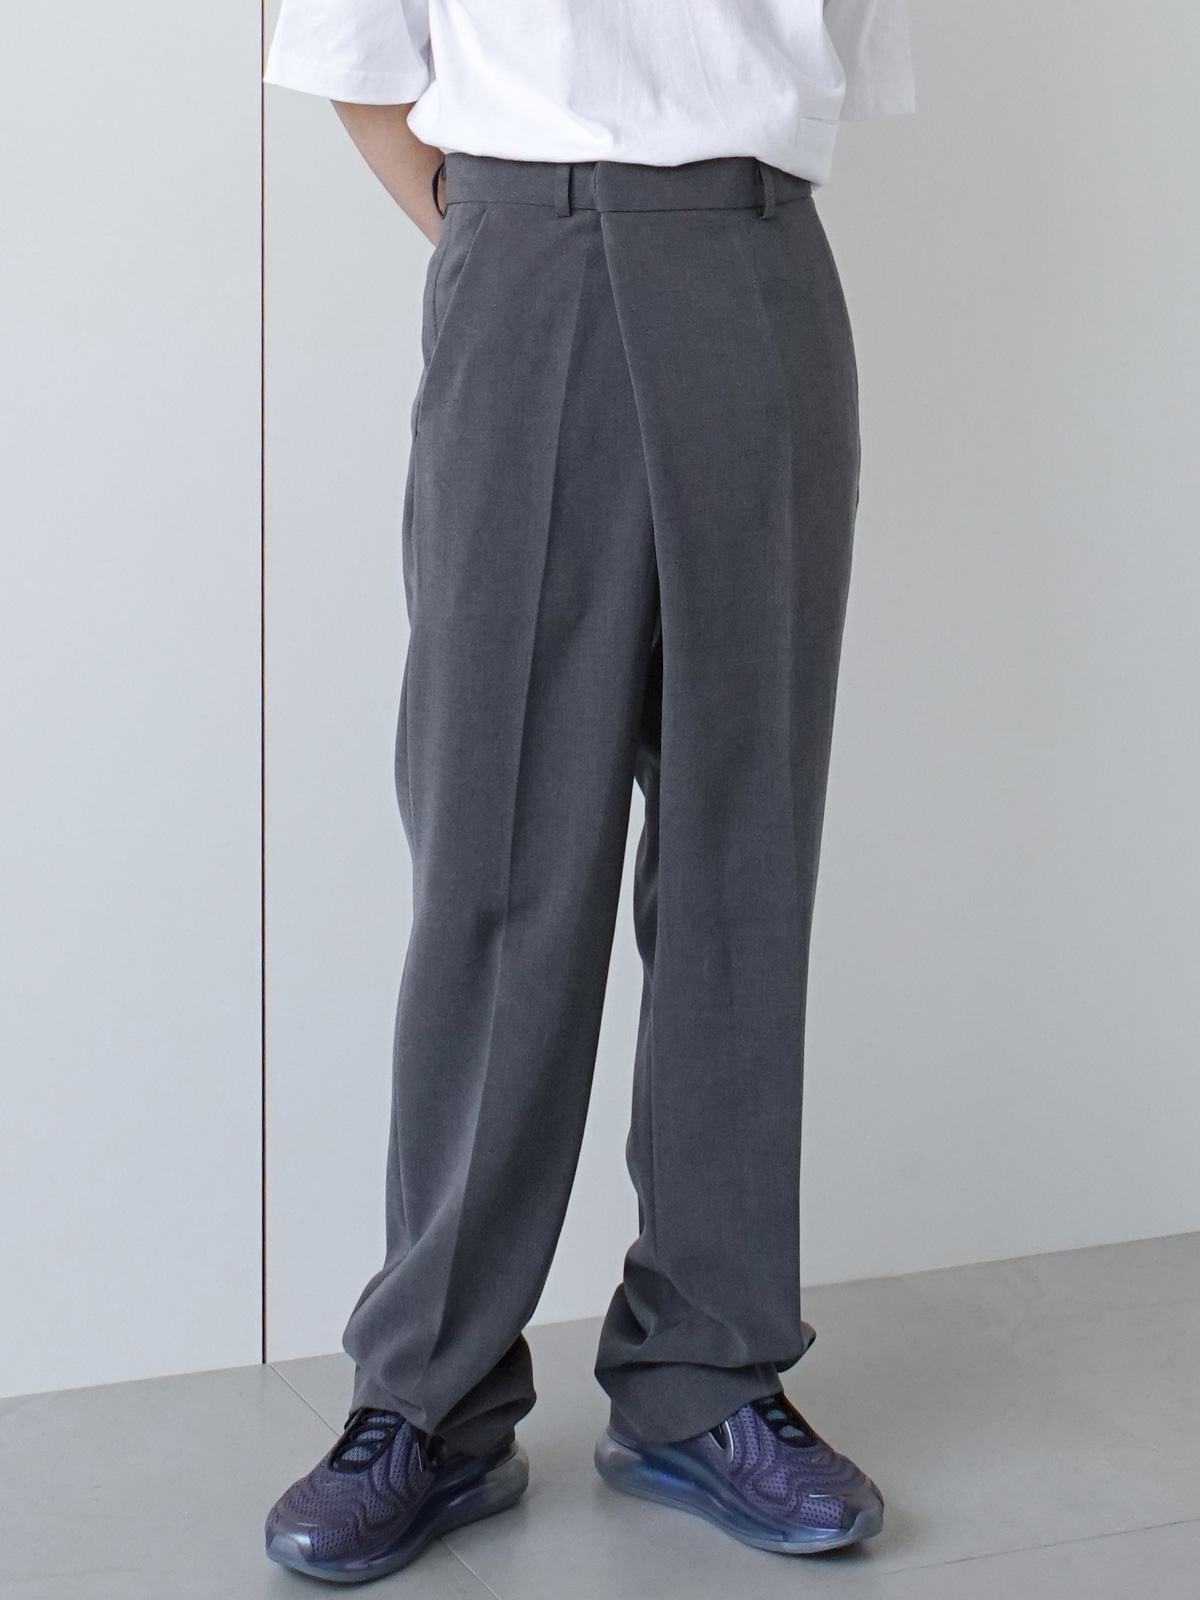 Dear Overlap Trousers (2color)